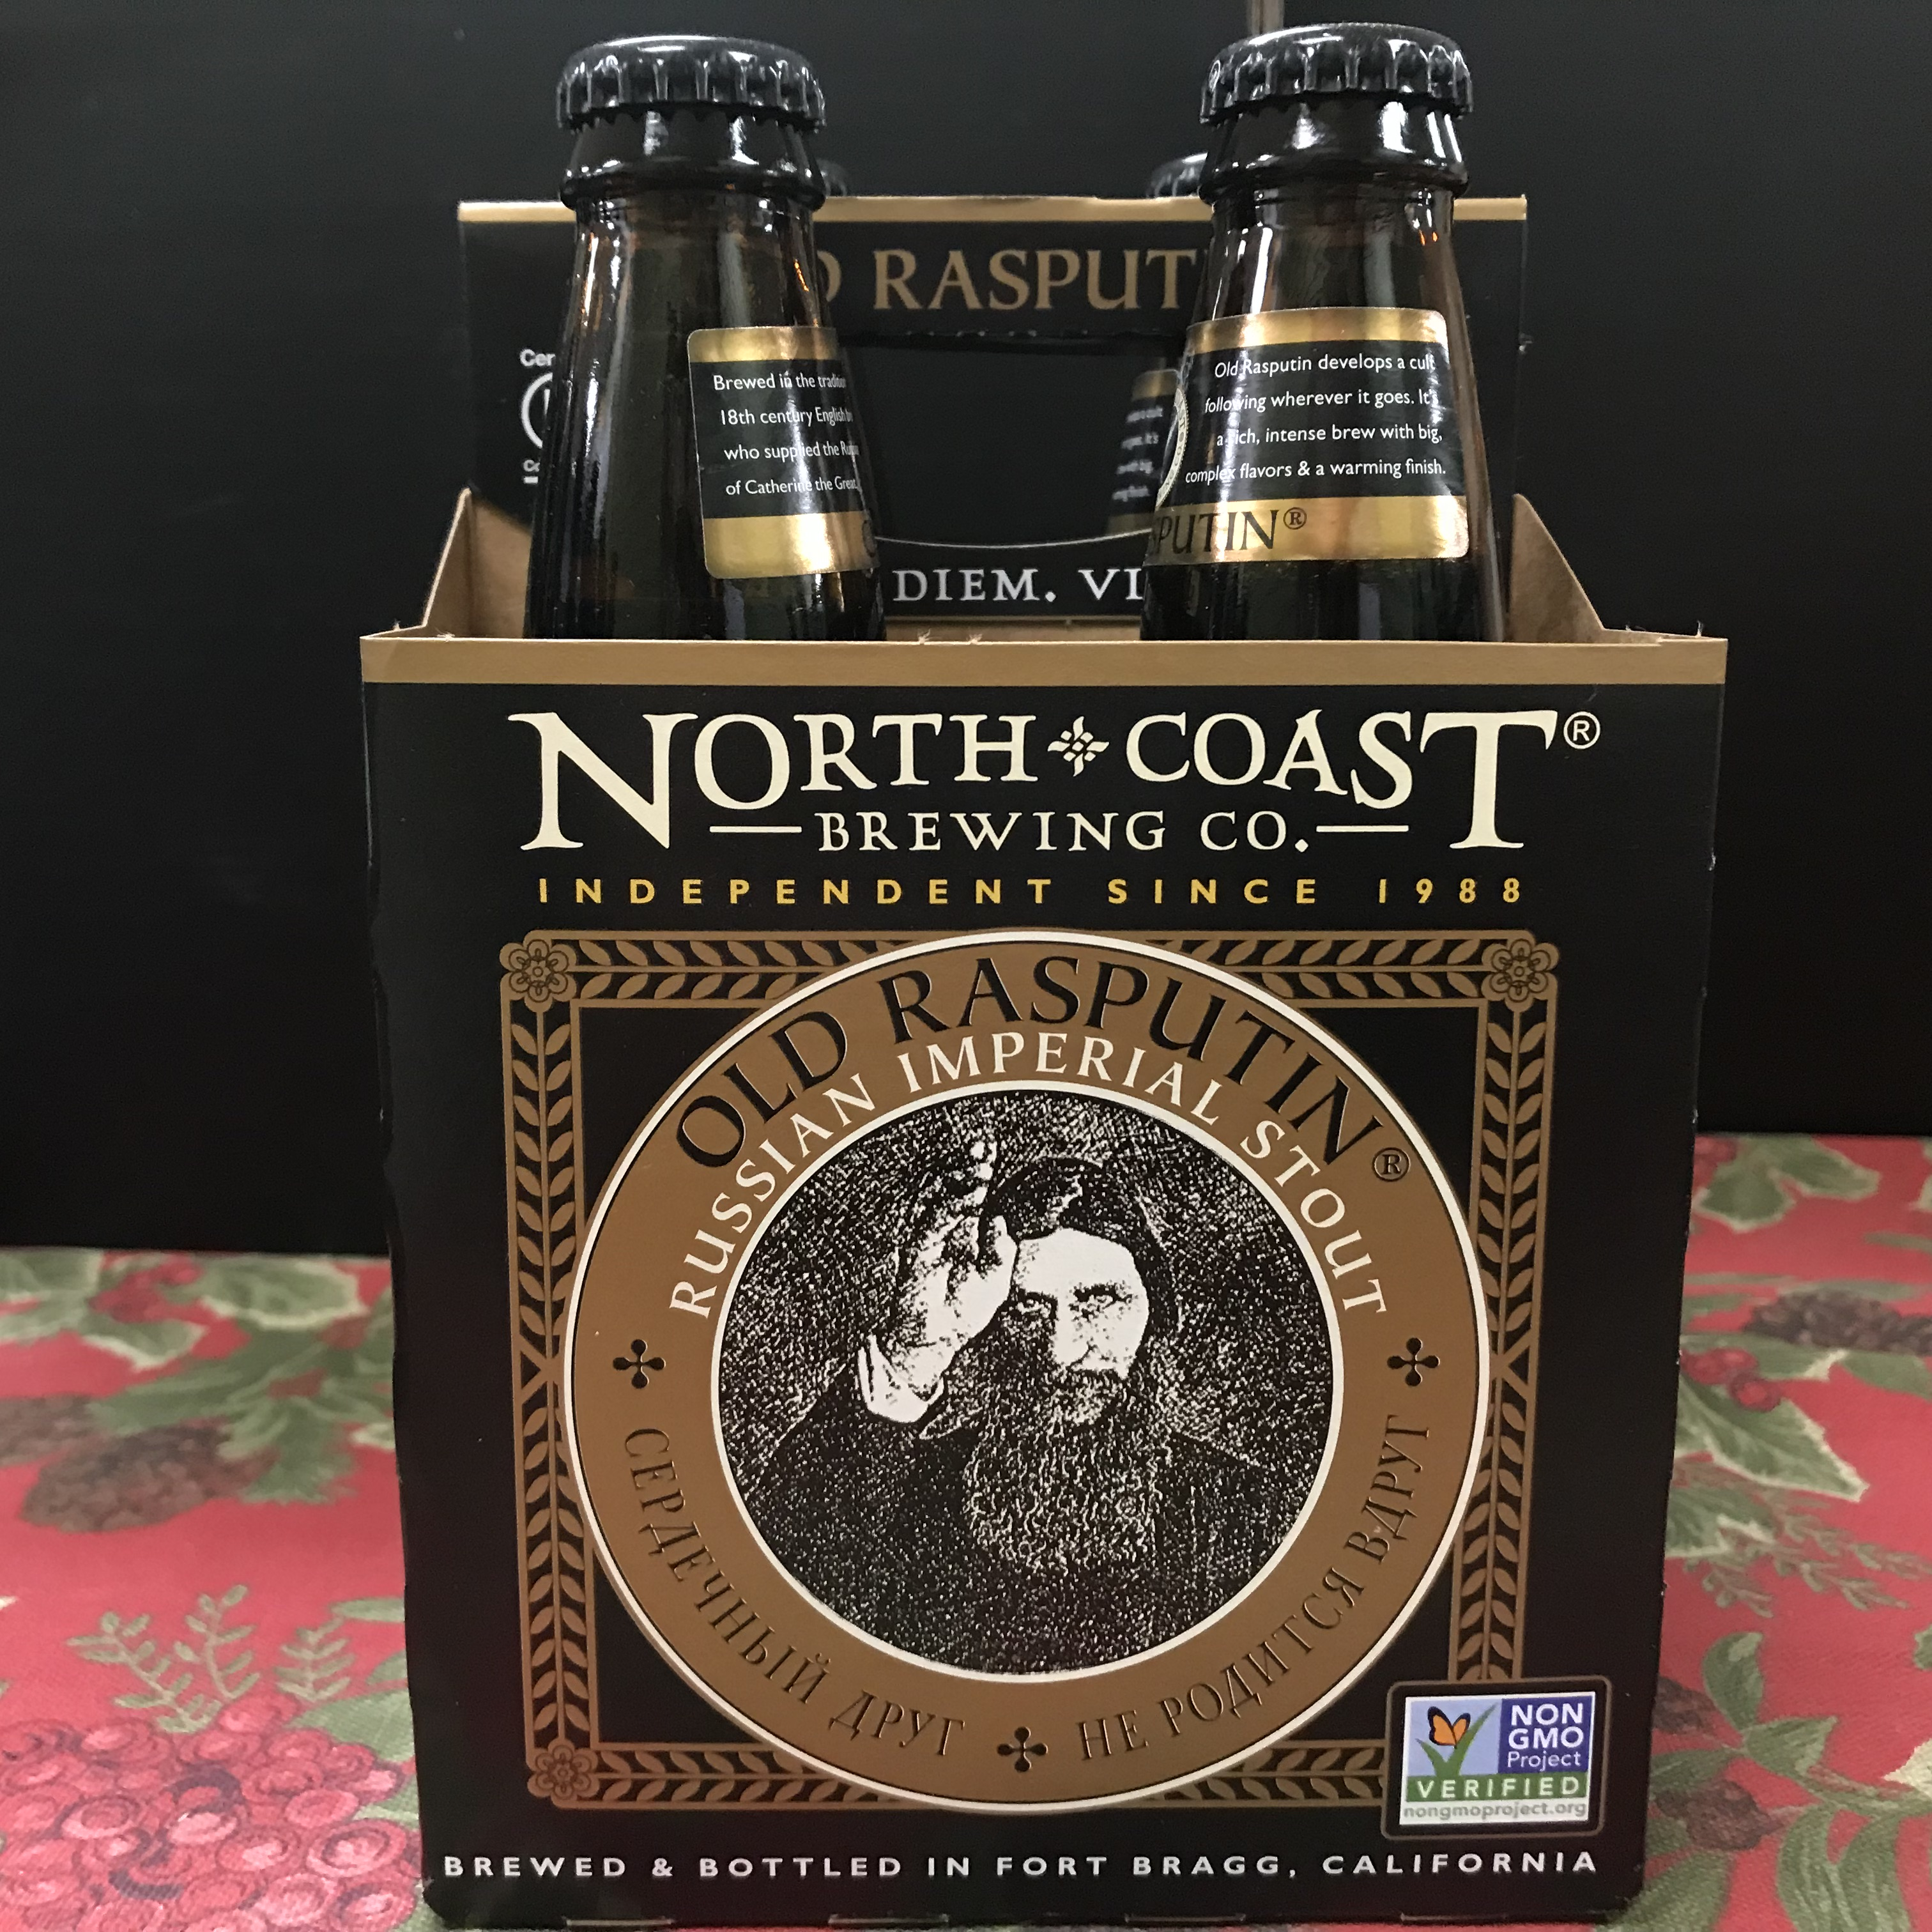 North Coast Old Rasputin Russian Imperial Stout 4 x 12oz bottle